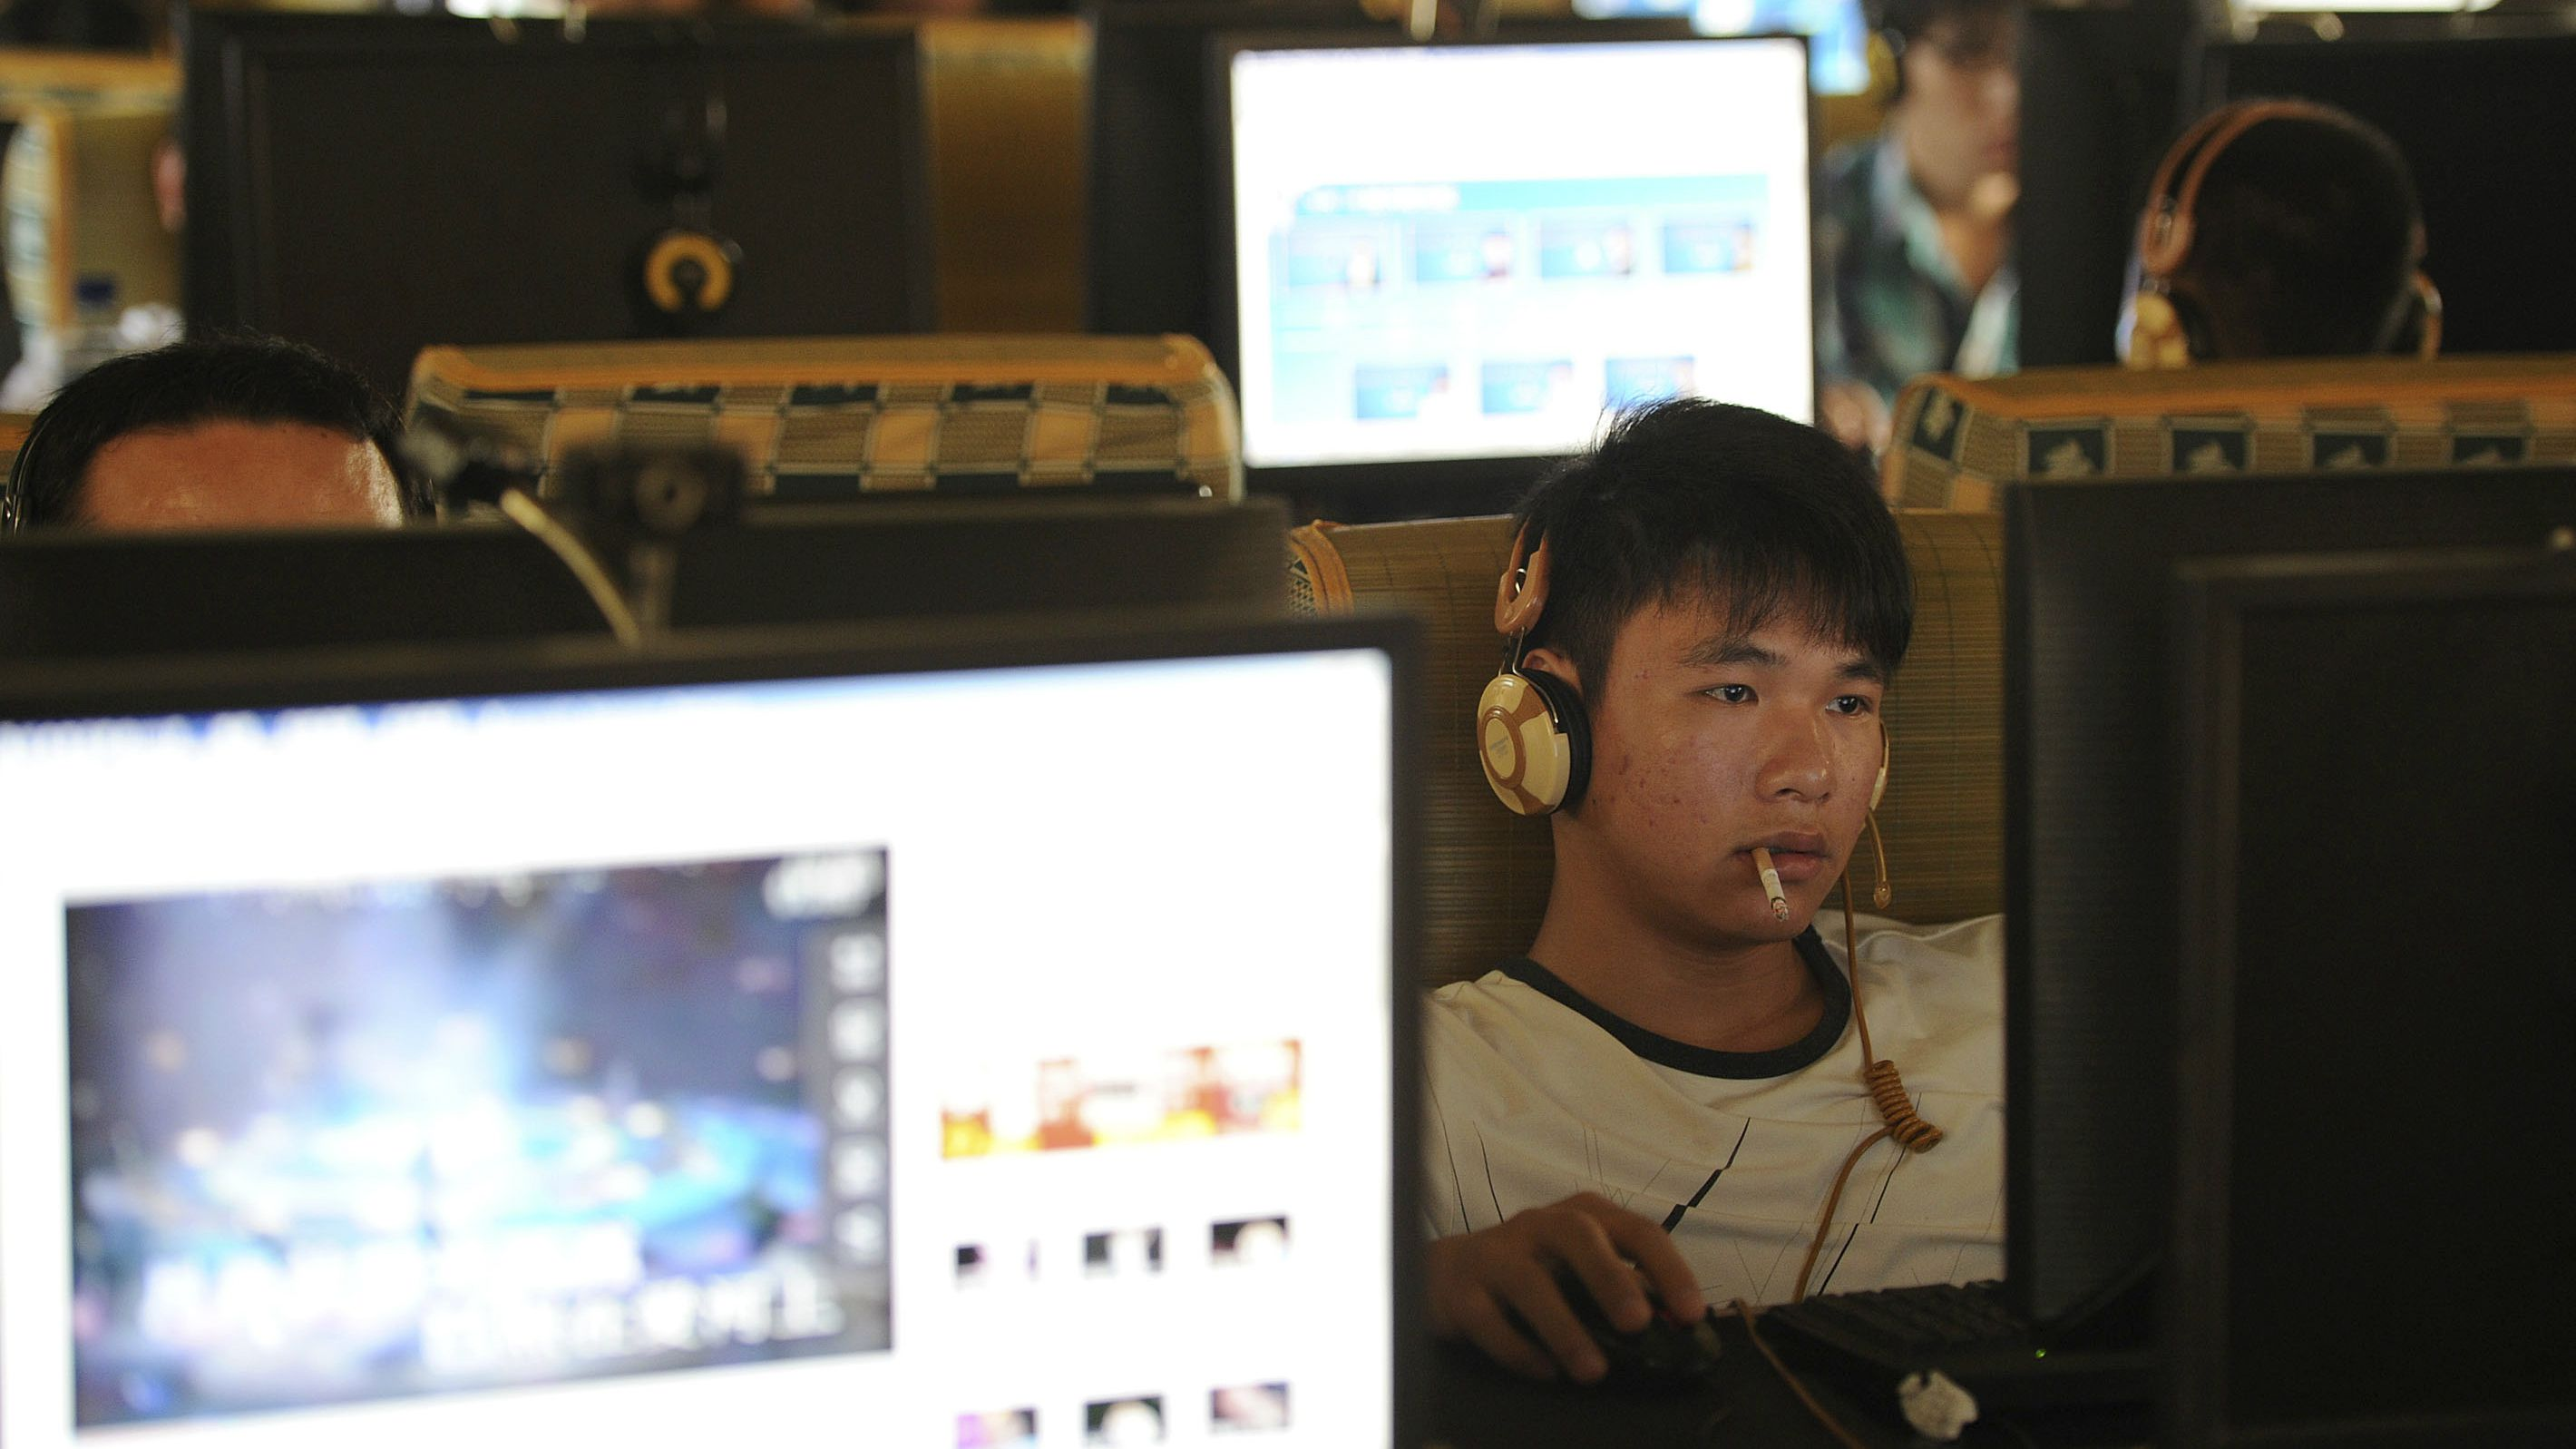 A man smokes as he uses a computer at an internet cafe in Hefei, Anhui province, September 15, 2011.